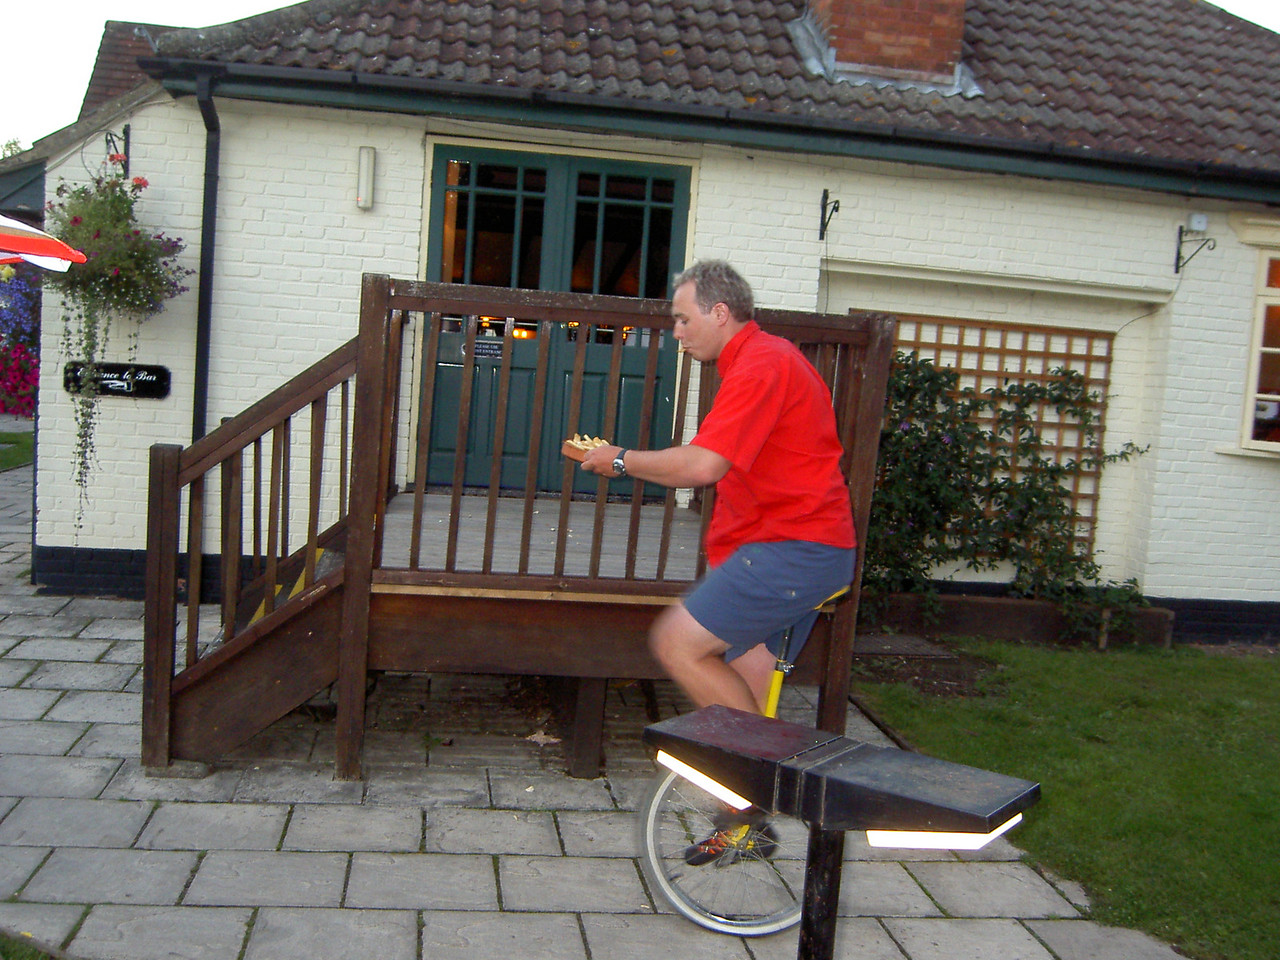 Chips and Unicycle